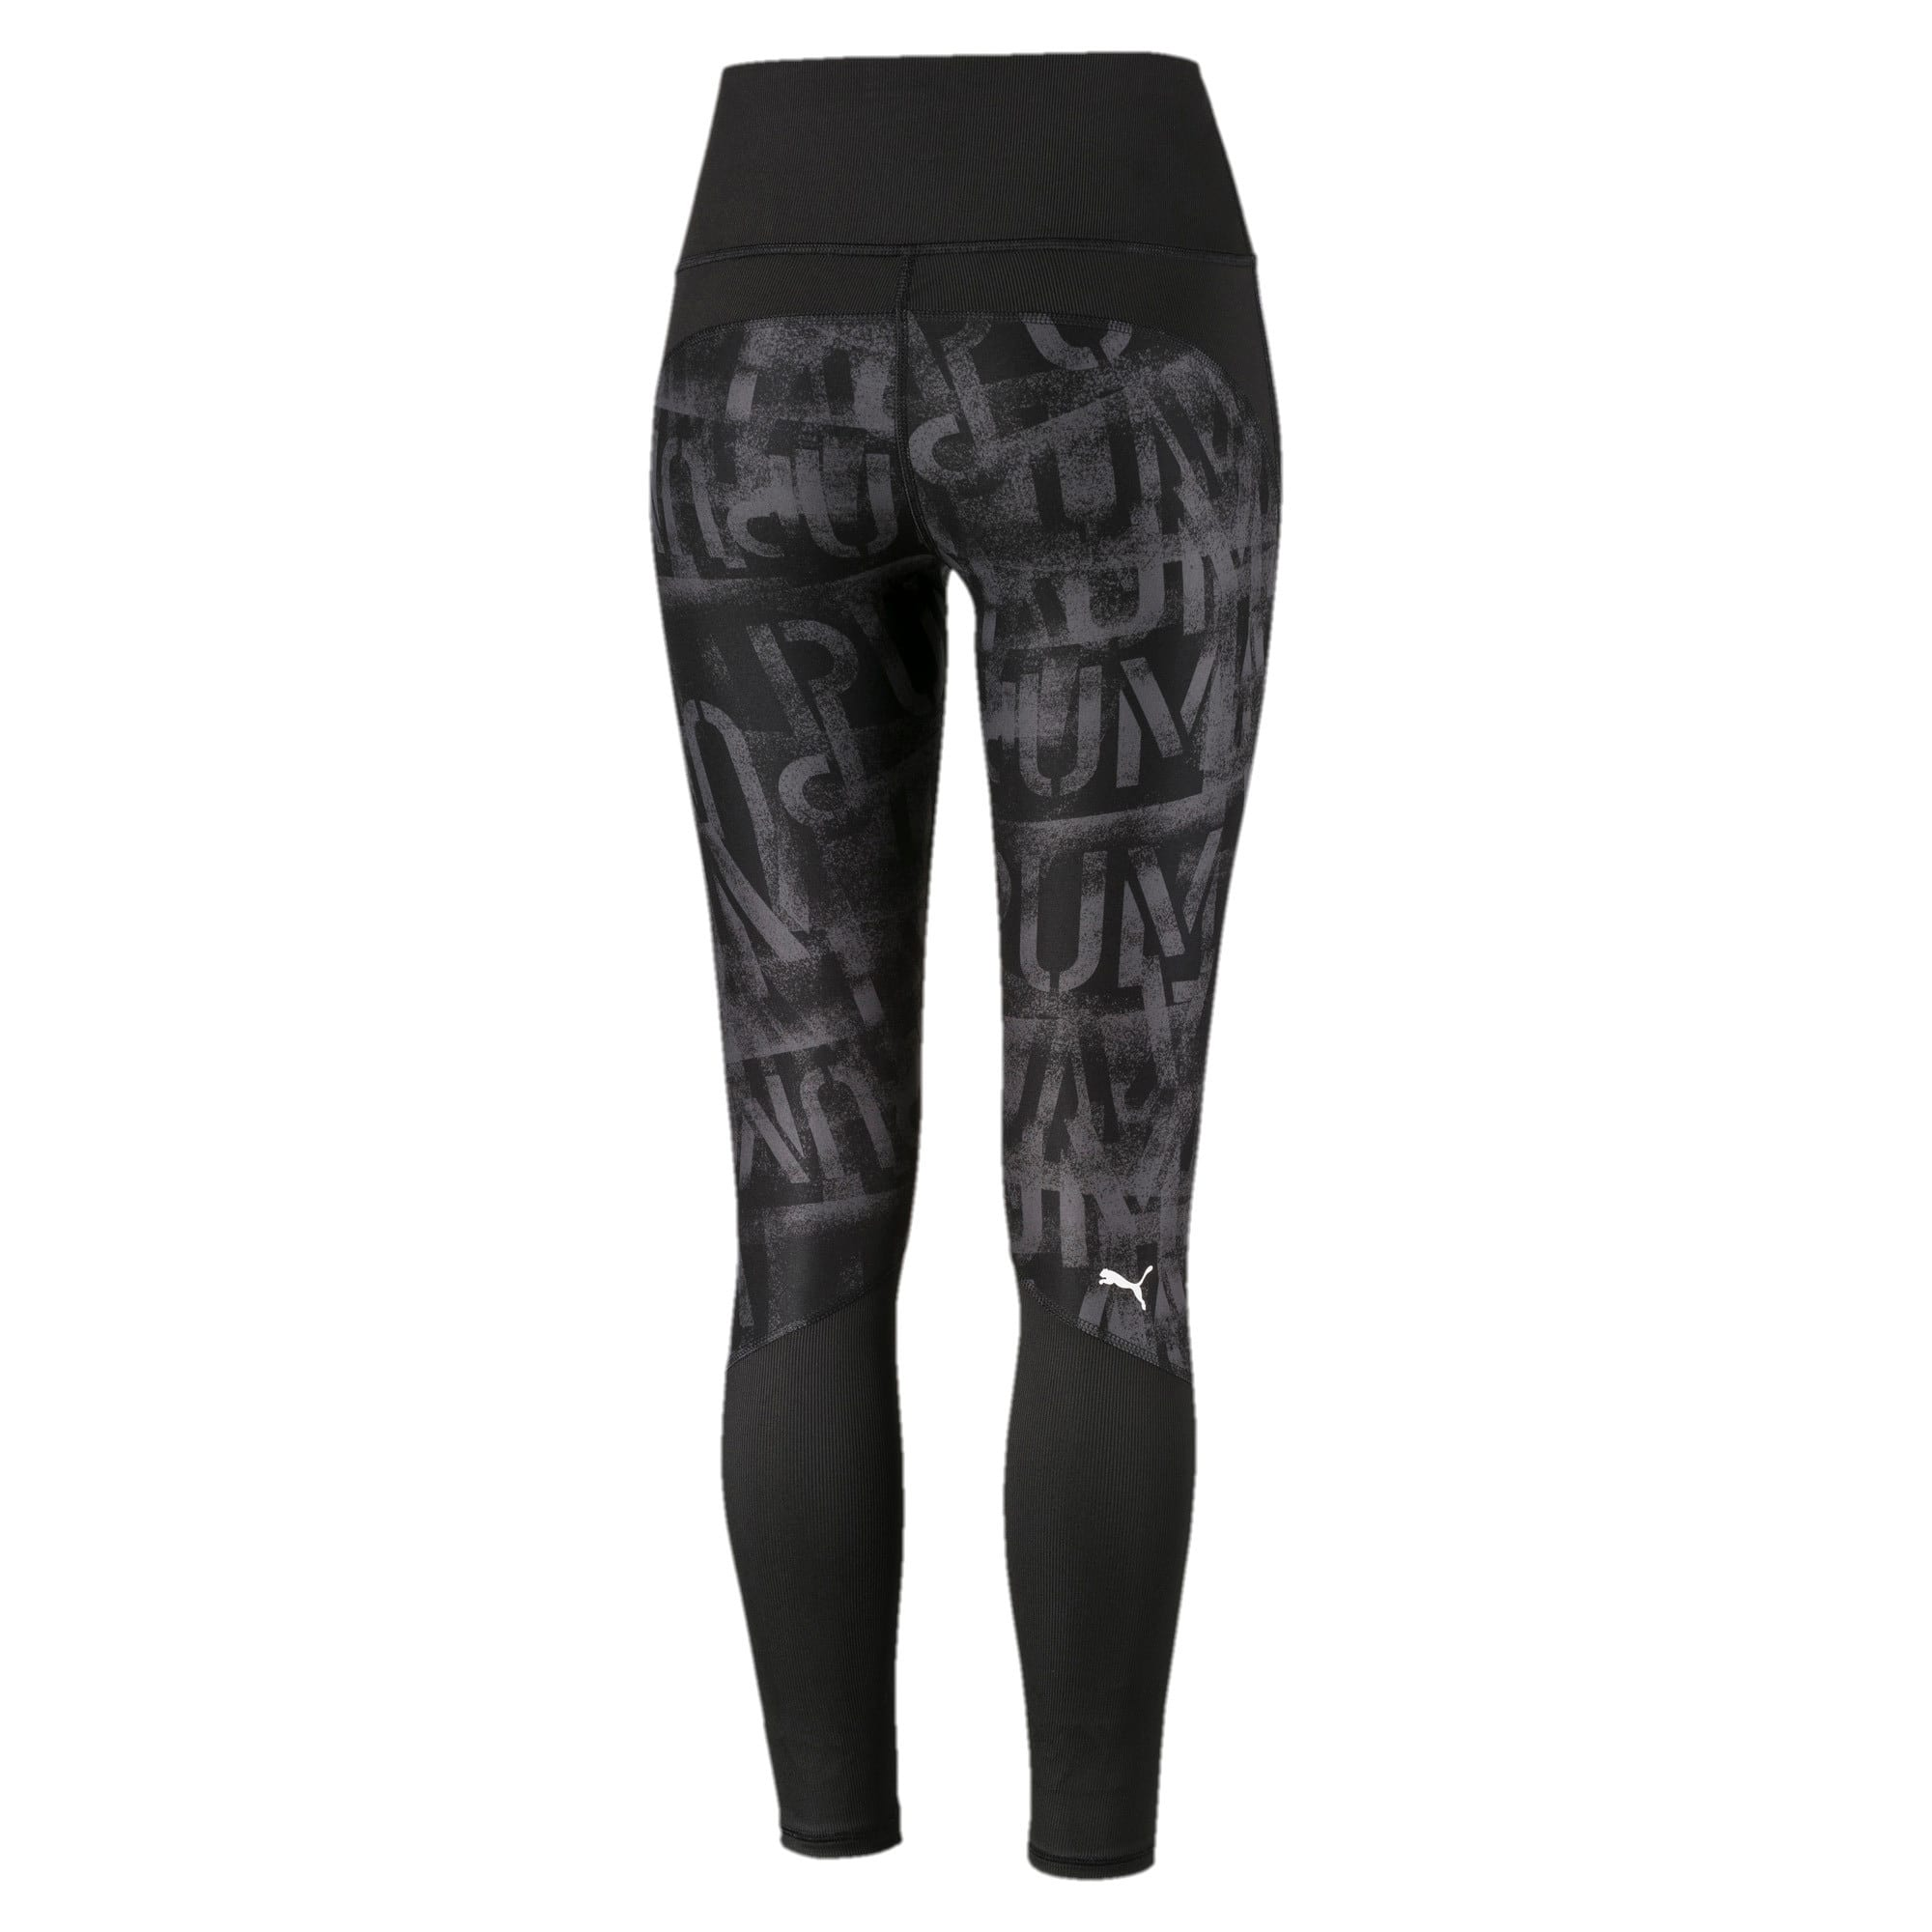 Thumbnail 5 of Studio Graphic Damen 7/8 Tight, Puma Black, medium